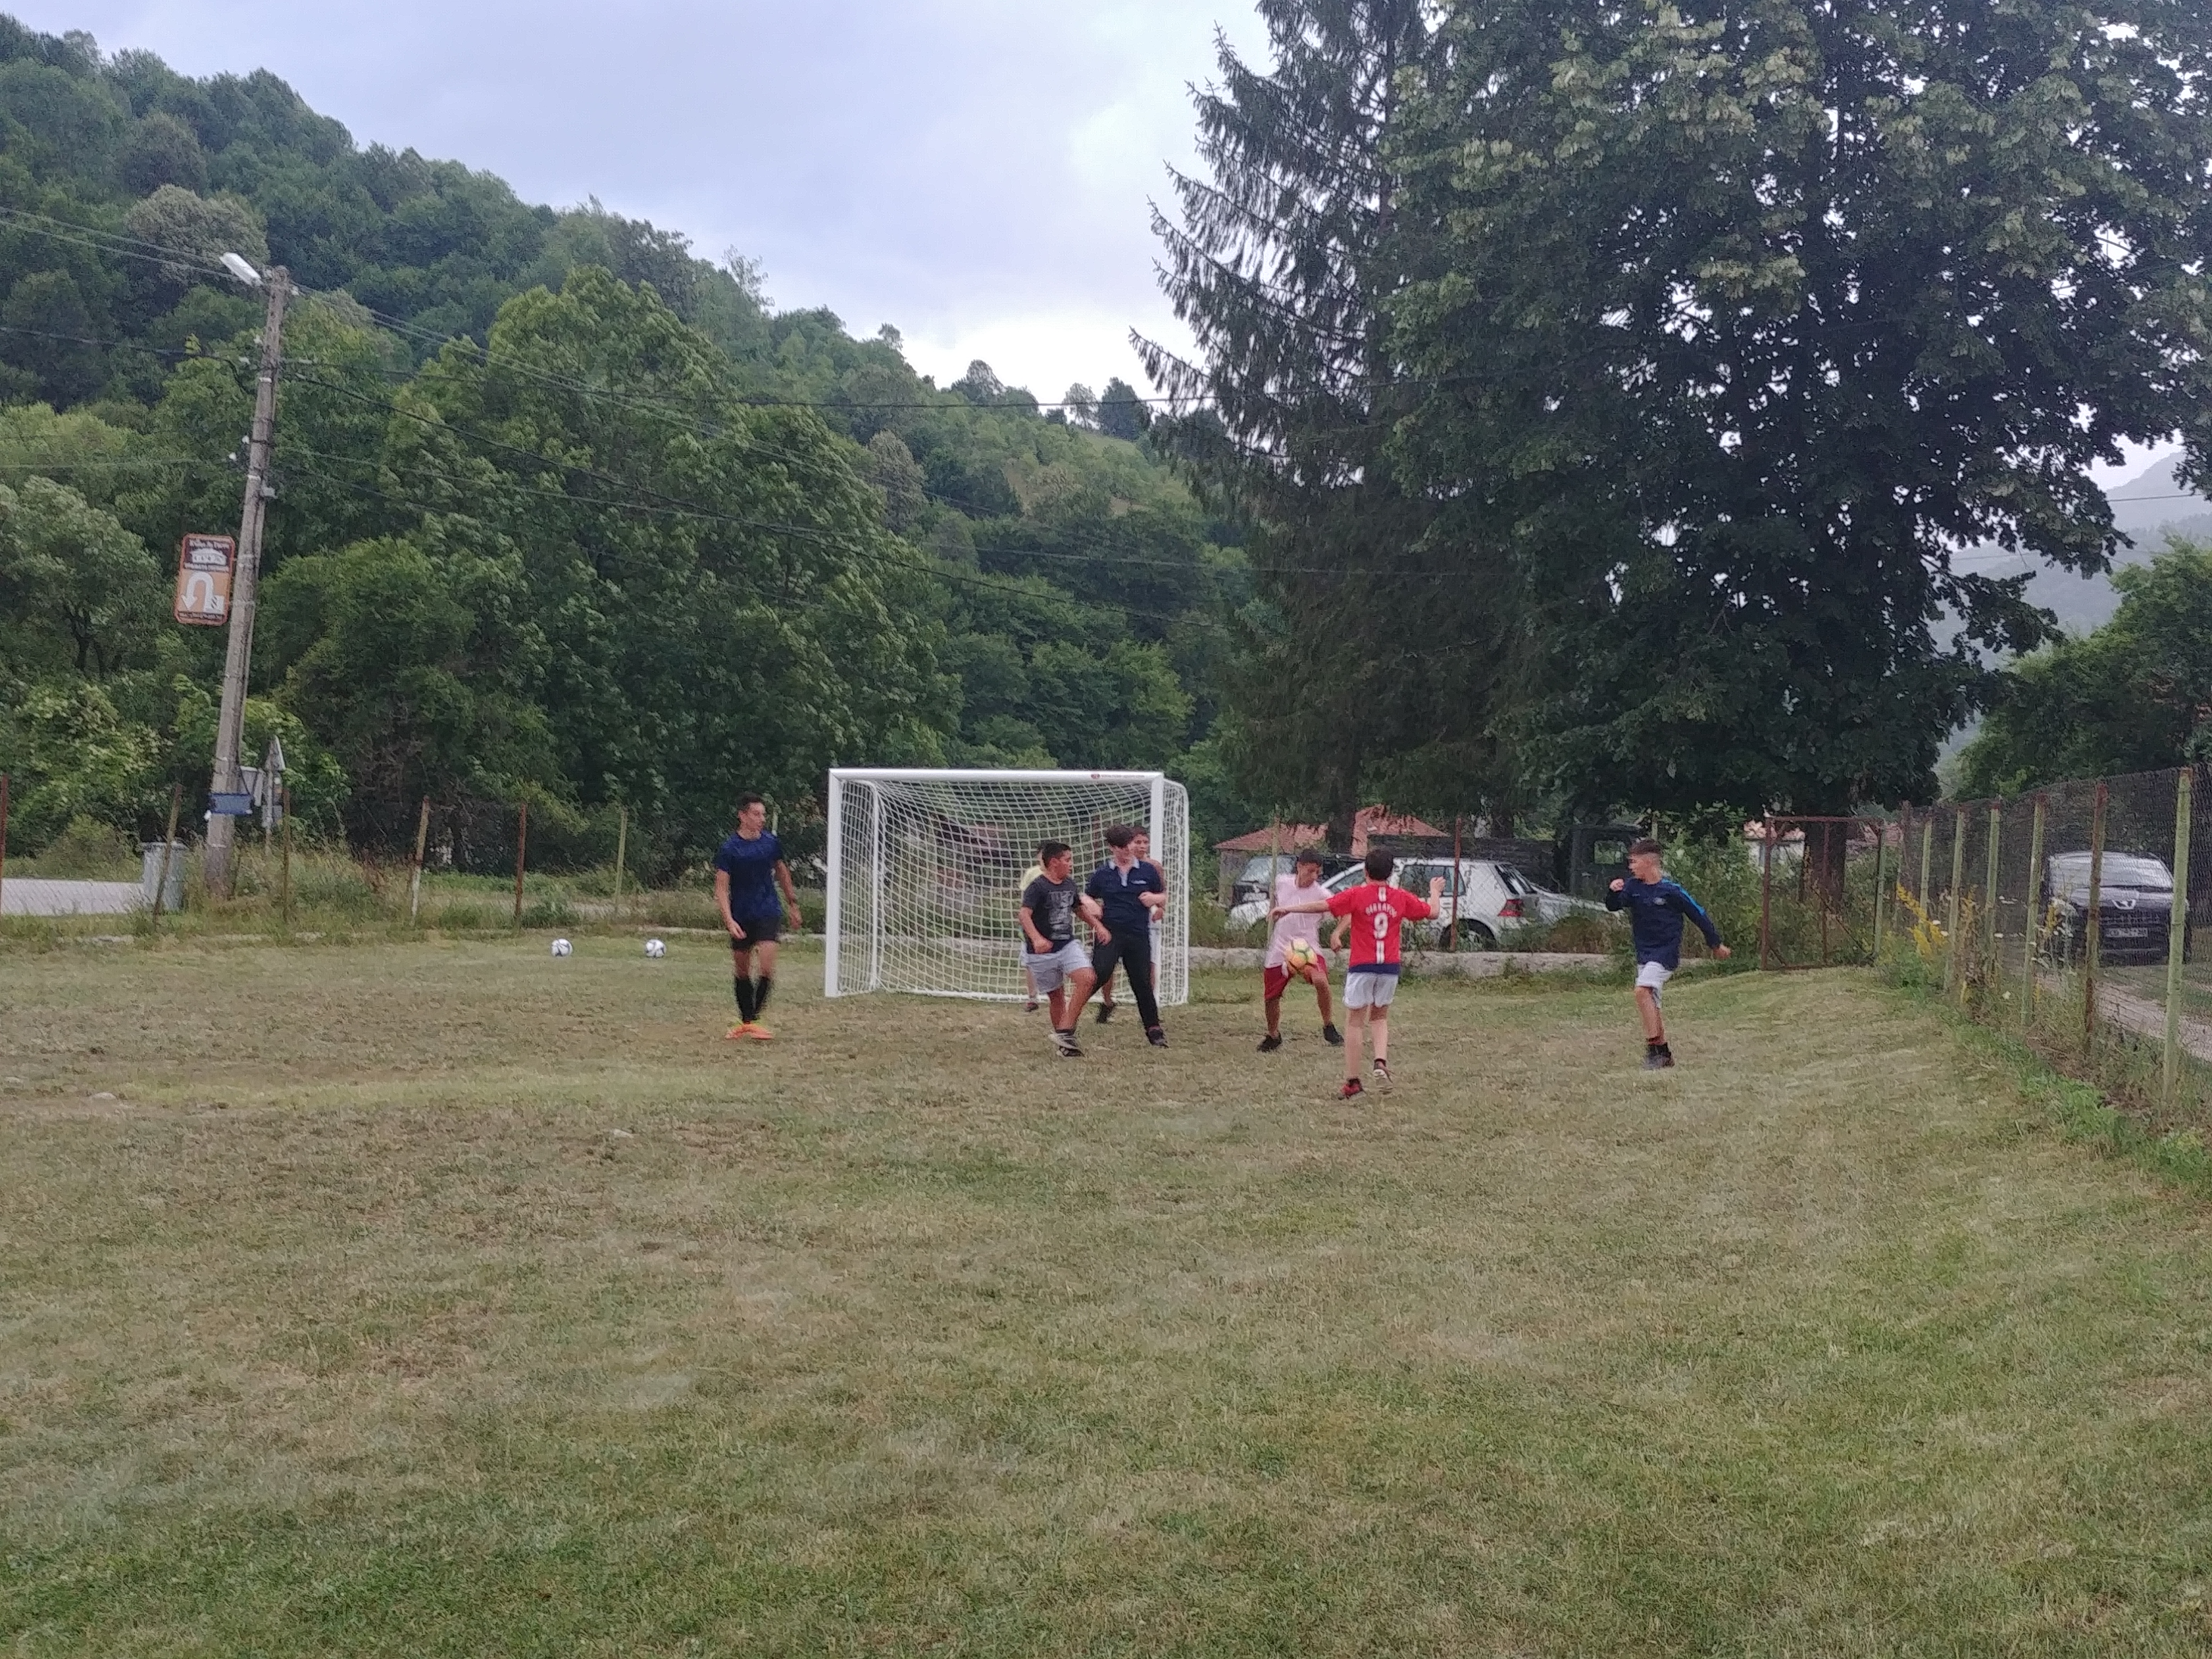 Playing%20soccer%20with%20the%20new%20goals original